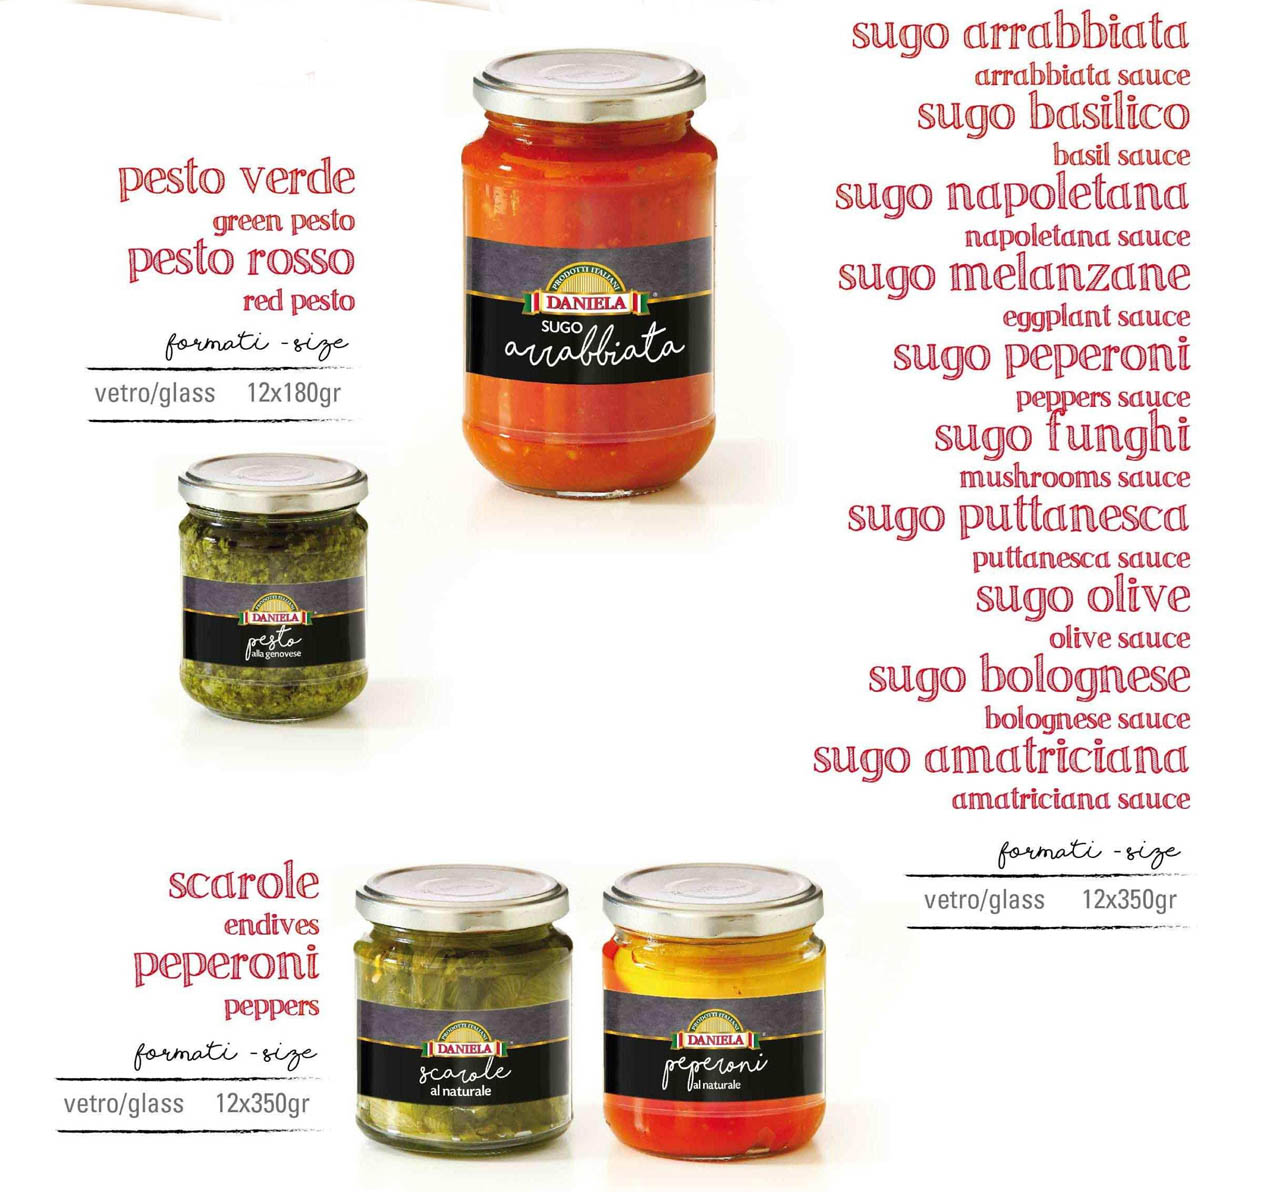 Italian sauces and condiments for pasta in glass jars